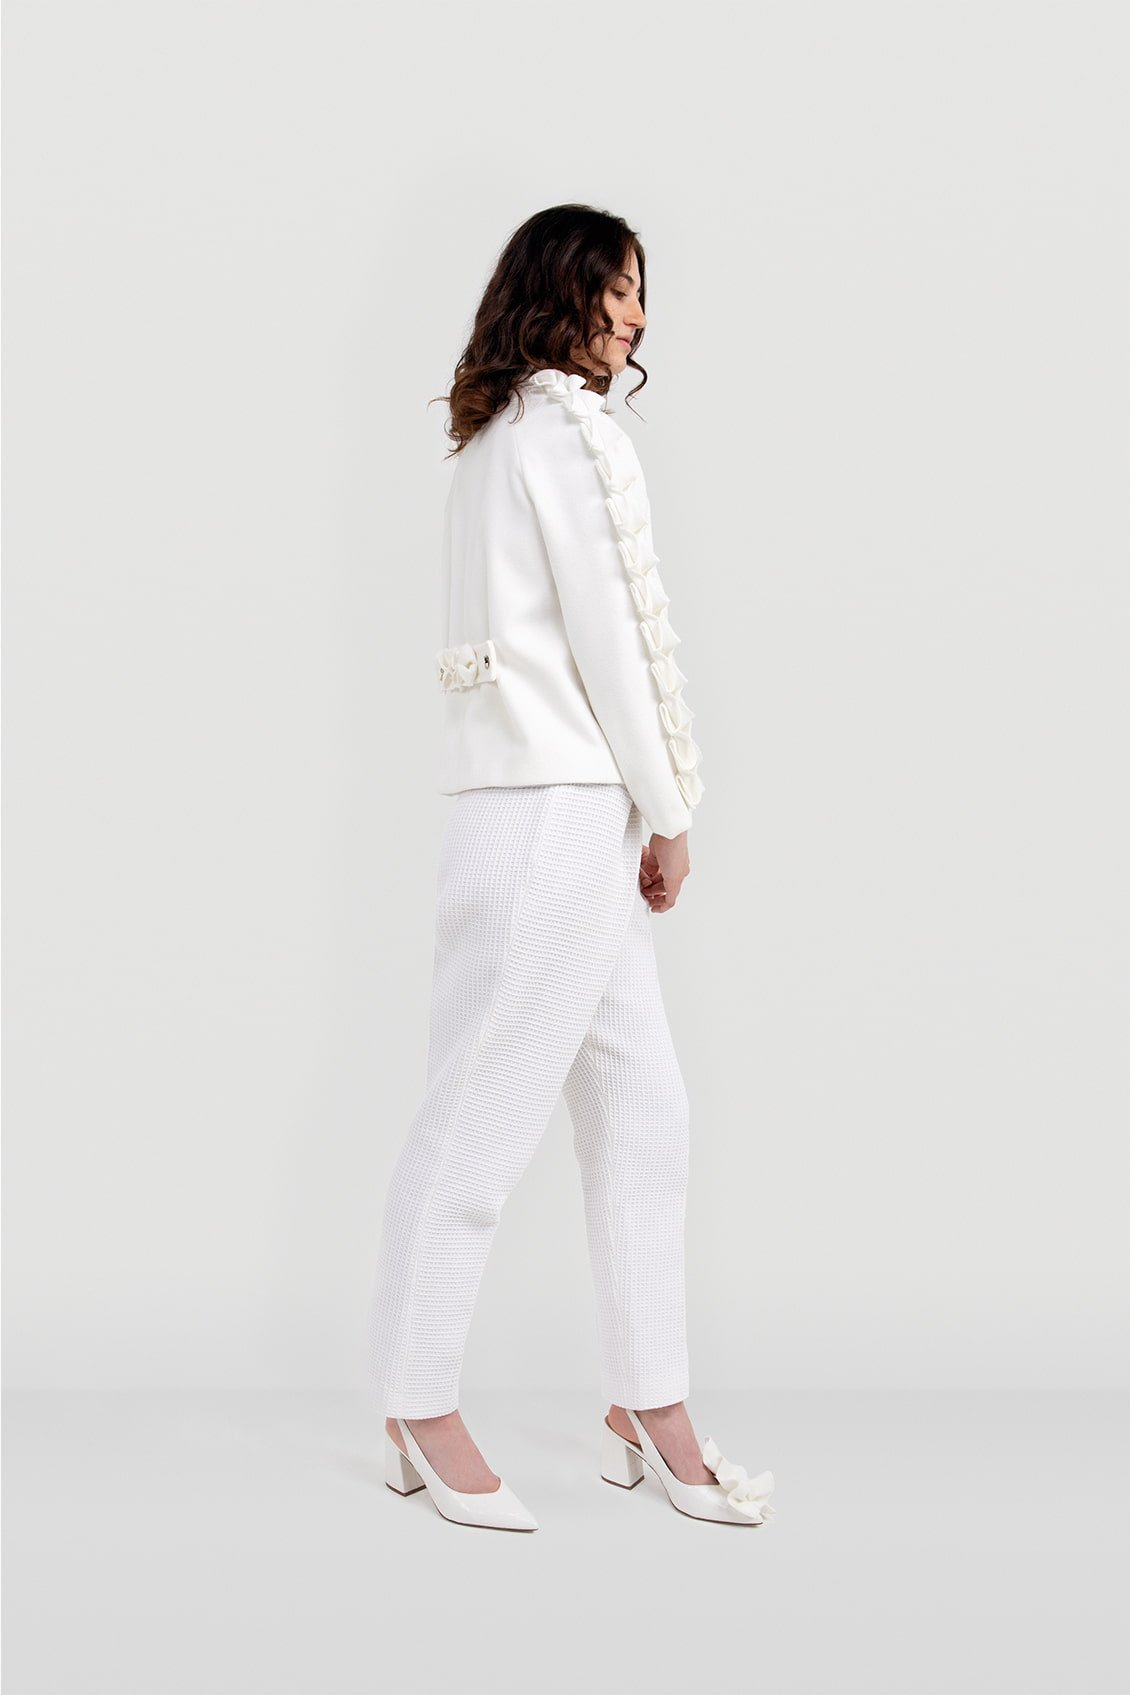 Side of the white wool women's coat ALIA with origami decorated sleeves. Designer made-to-measure garment made in the United Kingdom